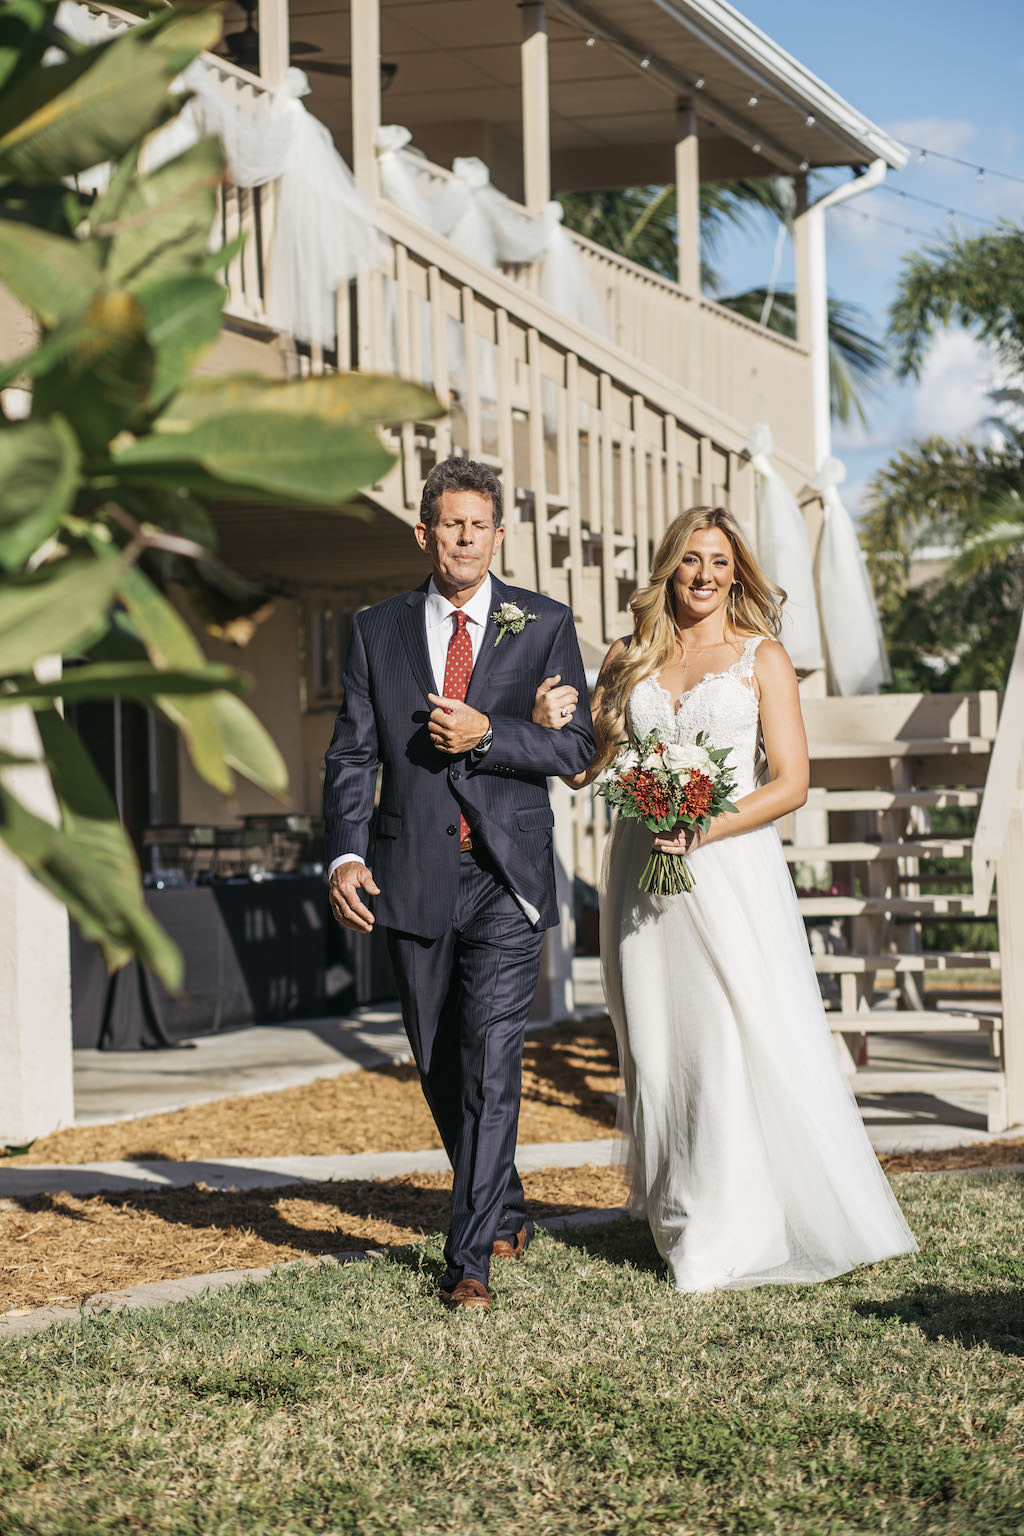 Outdoor Bride Walking with Father Down the Aisle Ceremony Portrait